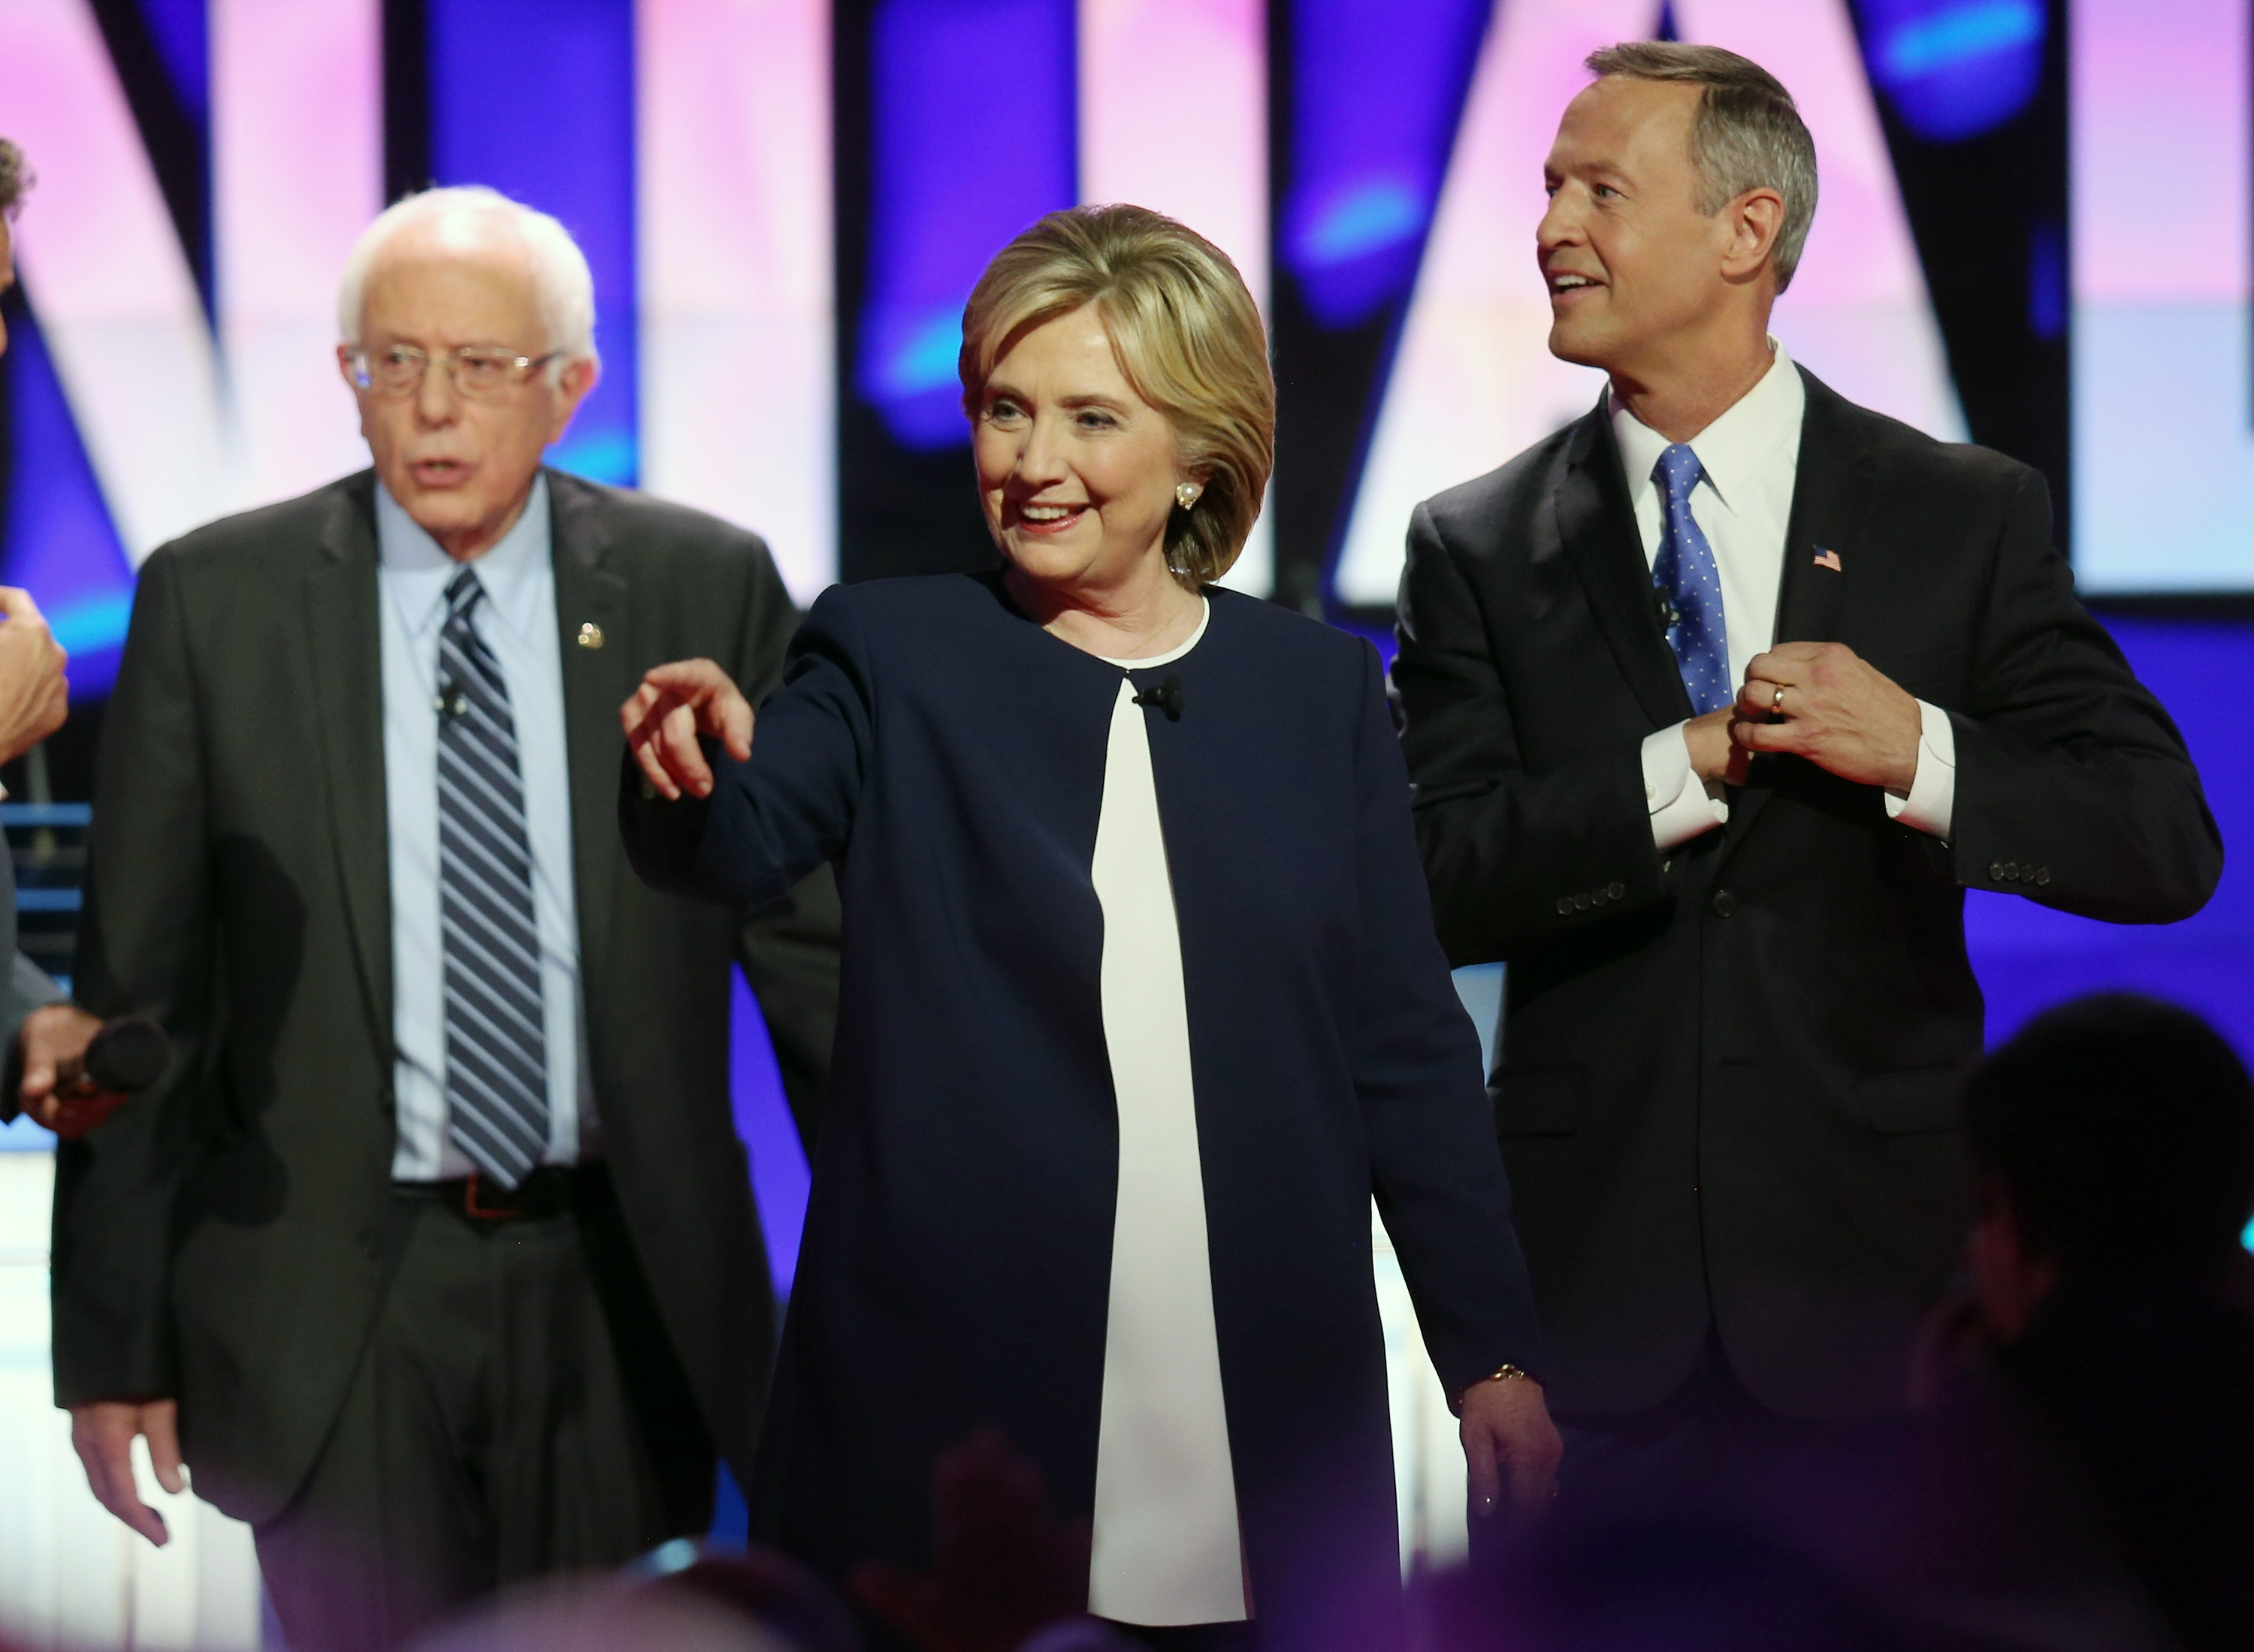 Sen. Bernie Sanders (I-VT) Hillary Clinton and Martin O'Malley walk on the stage at the end of a presidential debate on Oct. 13, 2015 in Las Vegas.